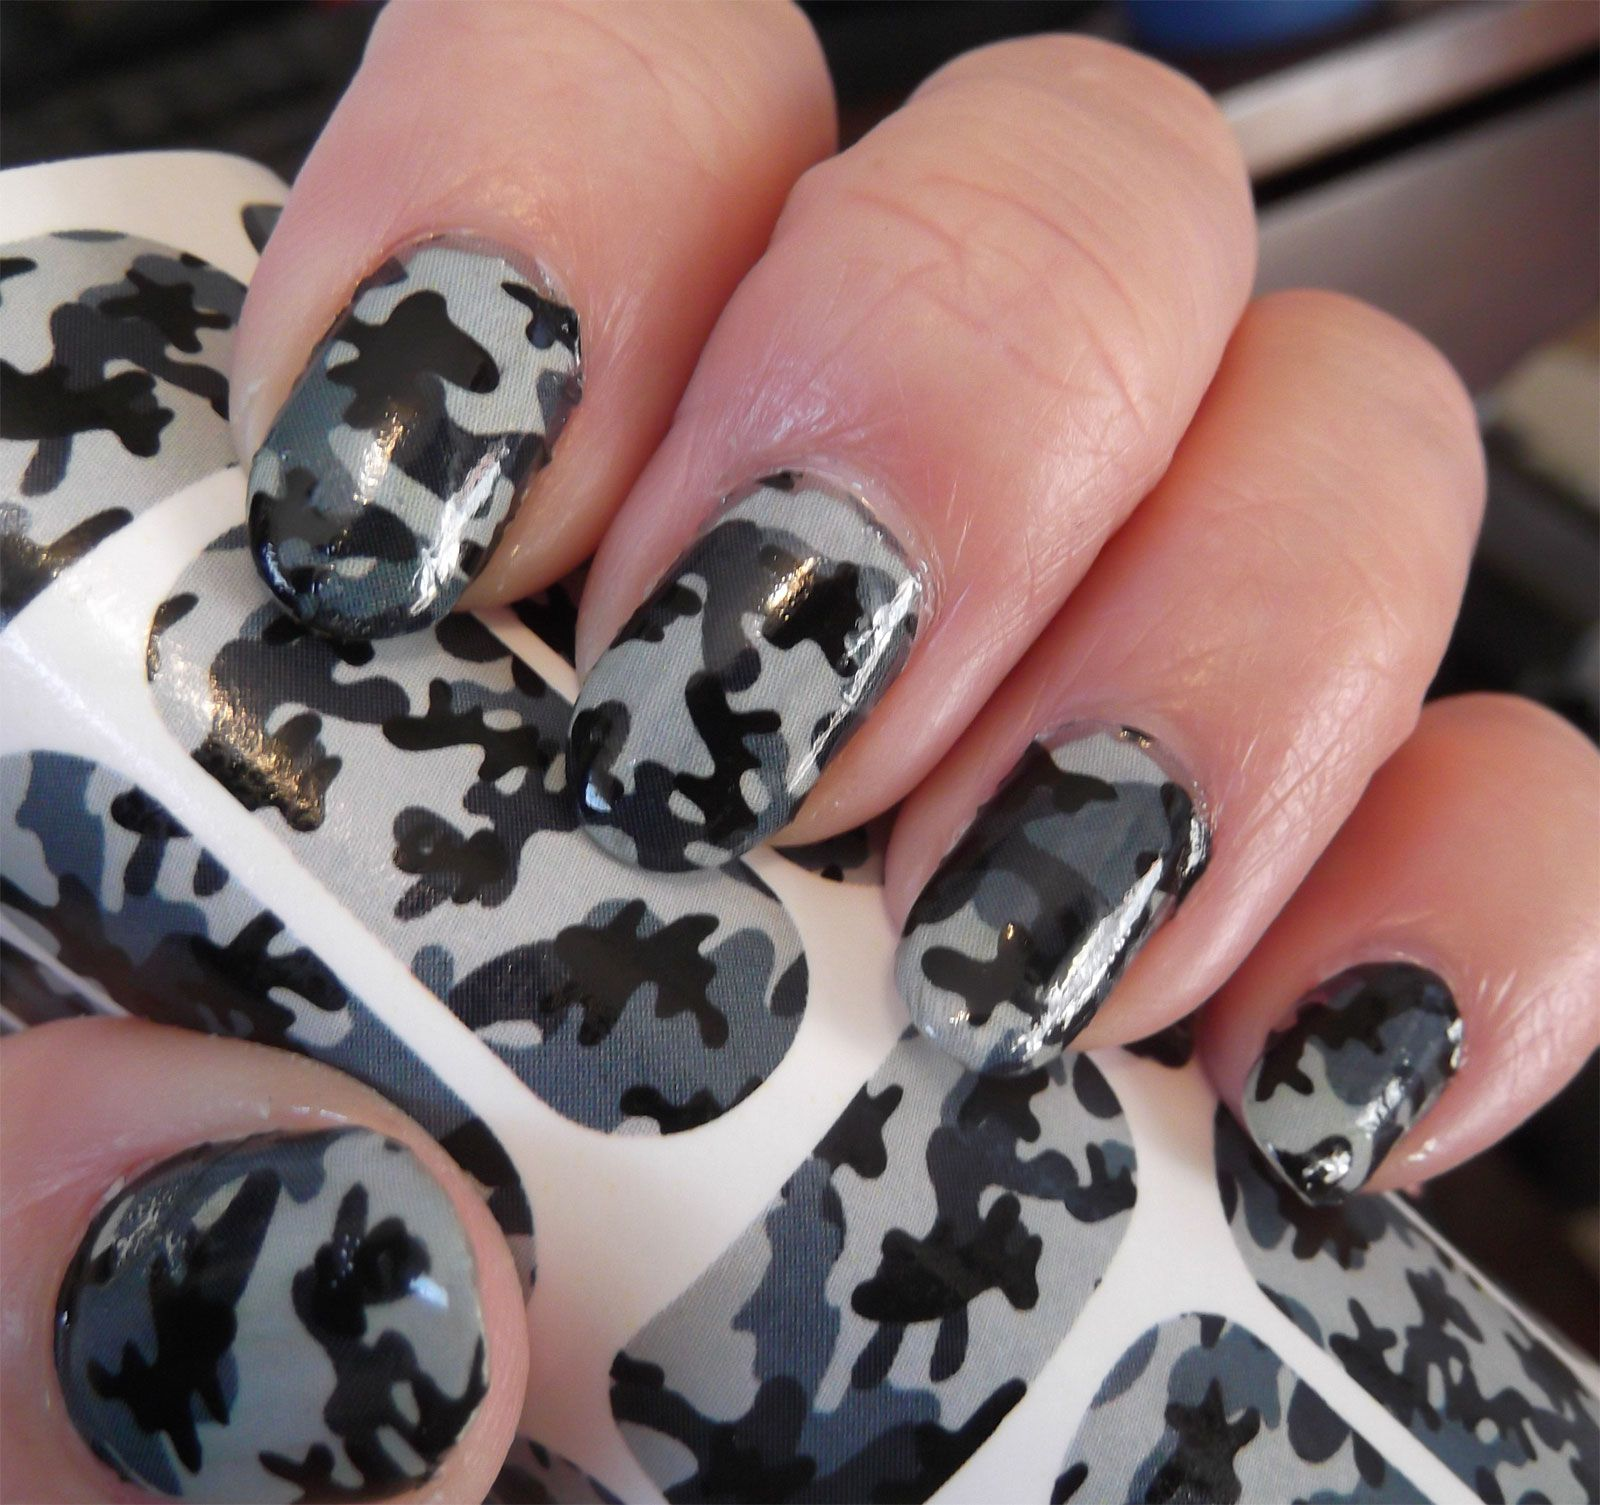 Grey camo nail art decals cm1 camouflage nails nails grey camo nail art decals cm1 camouflage nails prinsesfo Gallery